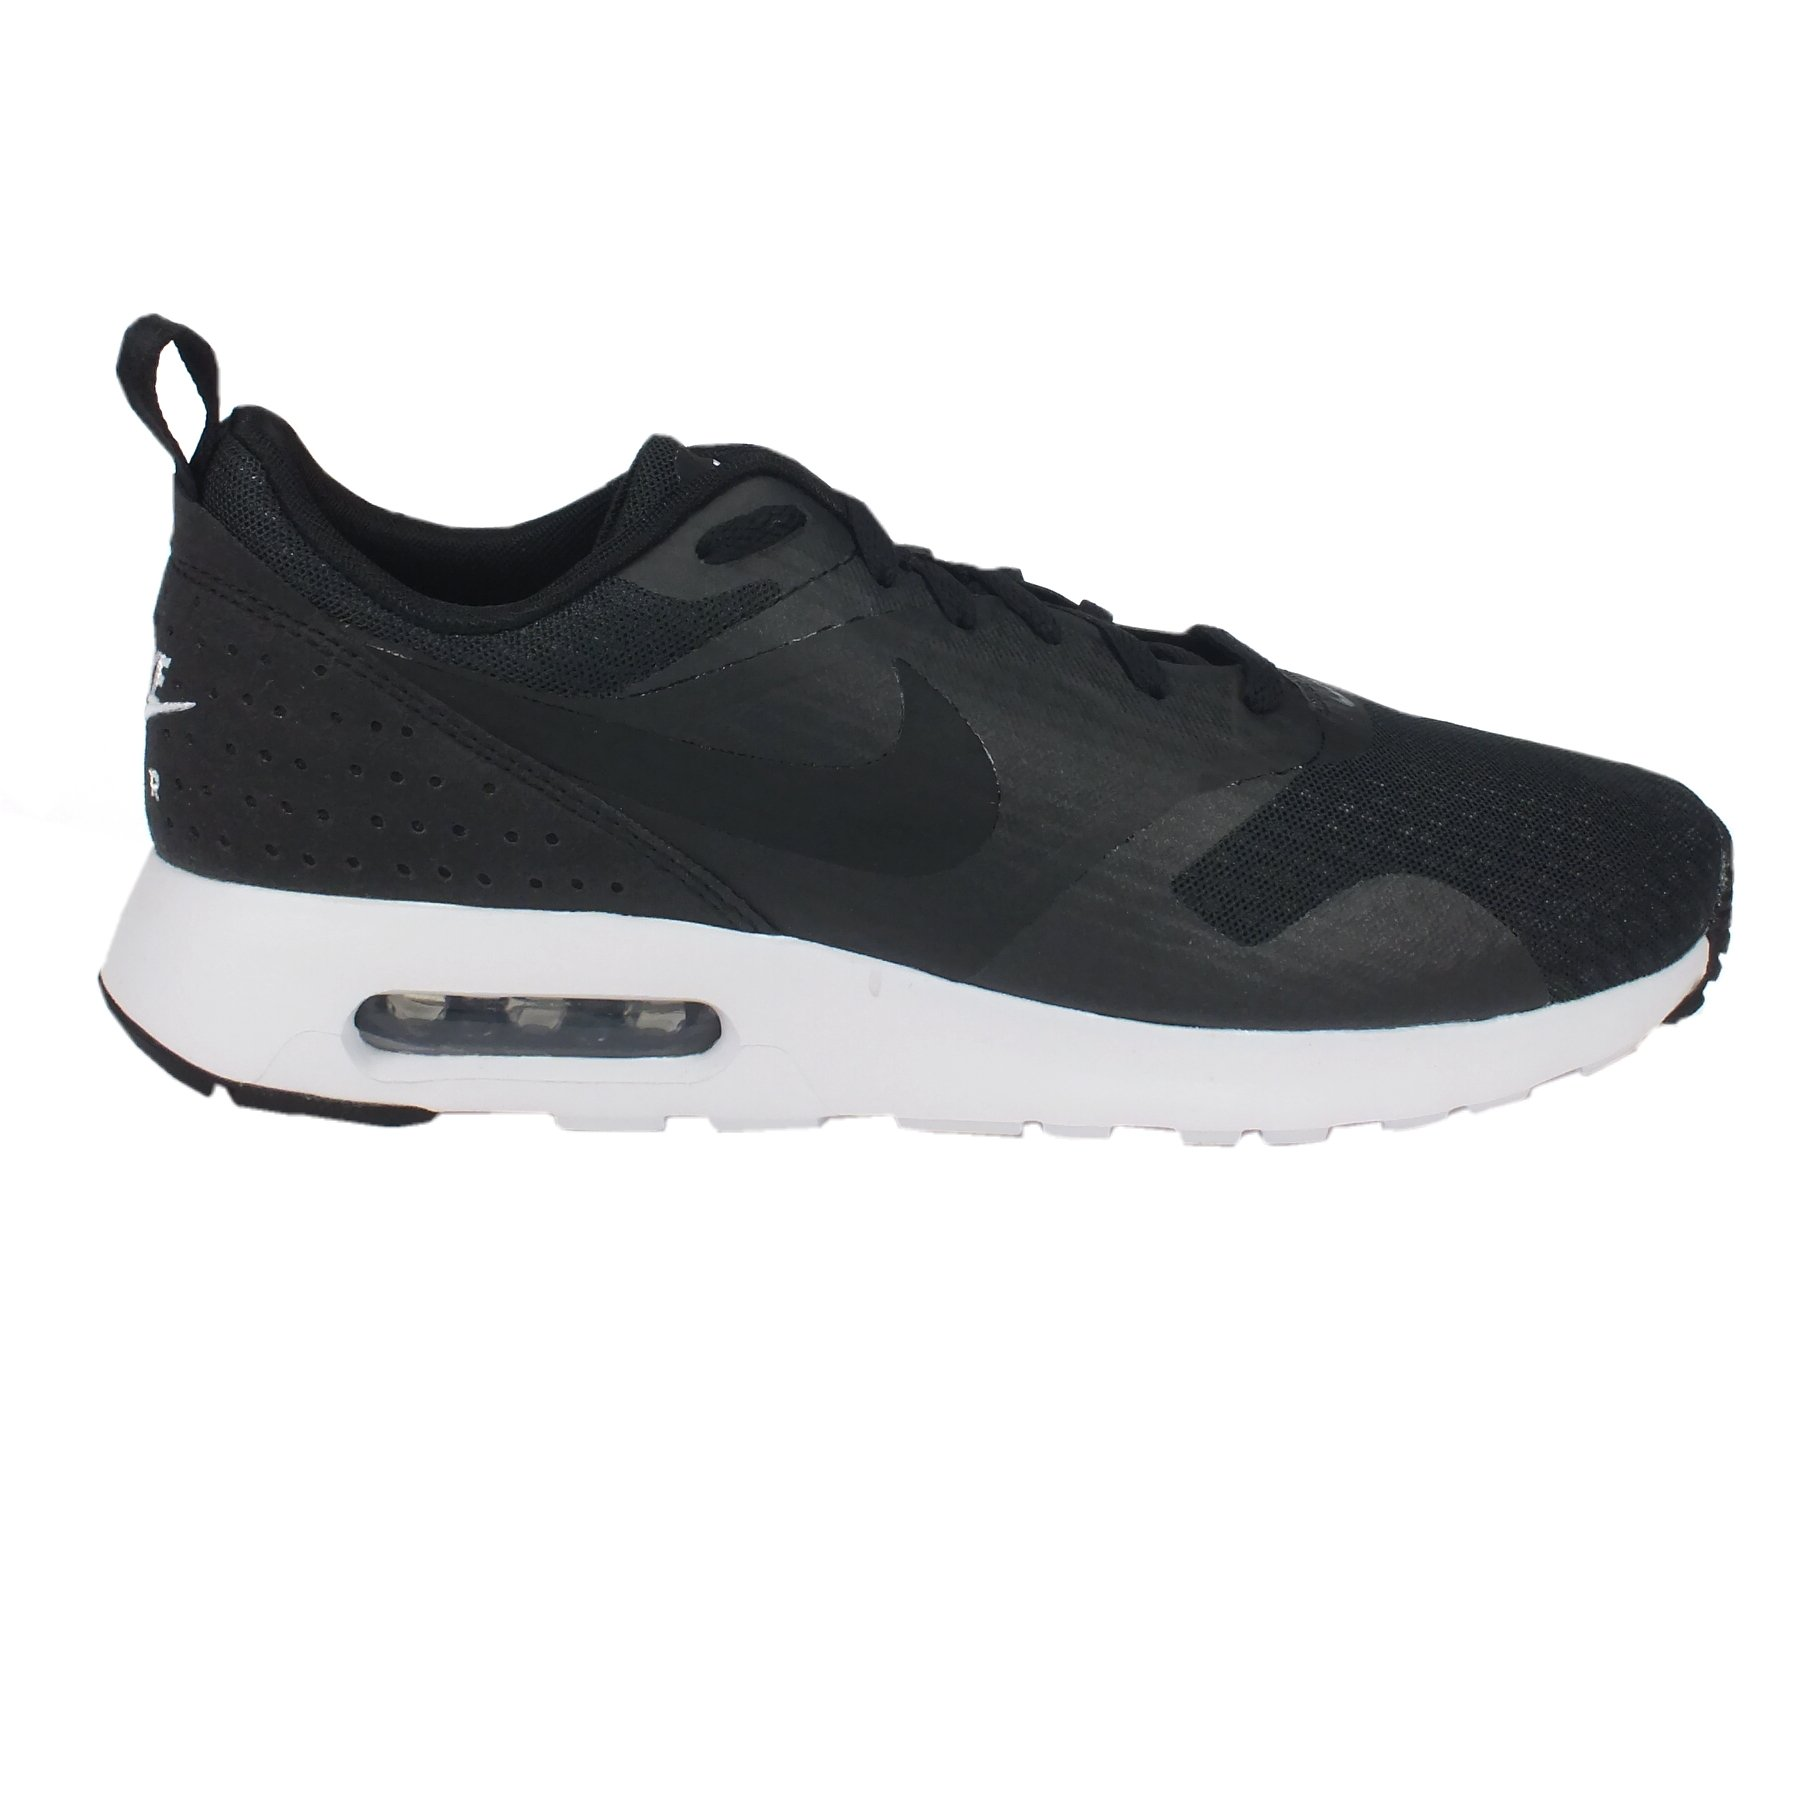 new style 18057 72899 Galleon - Nike Air Max Tavas Essential Mens Trainers 725073 Sneakers Shoes  (UK 8 US 9 EU 42.5, Black White 001)